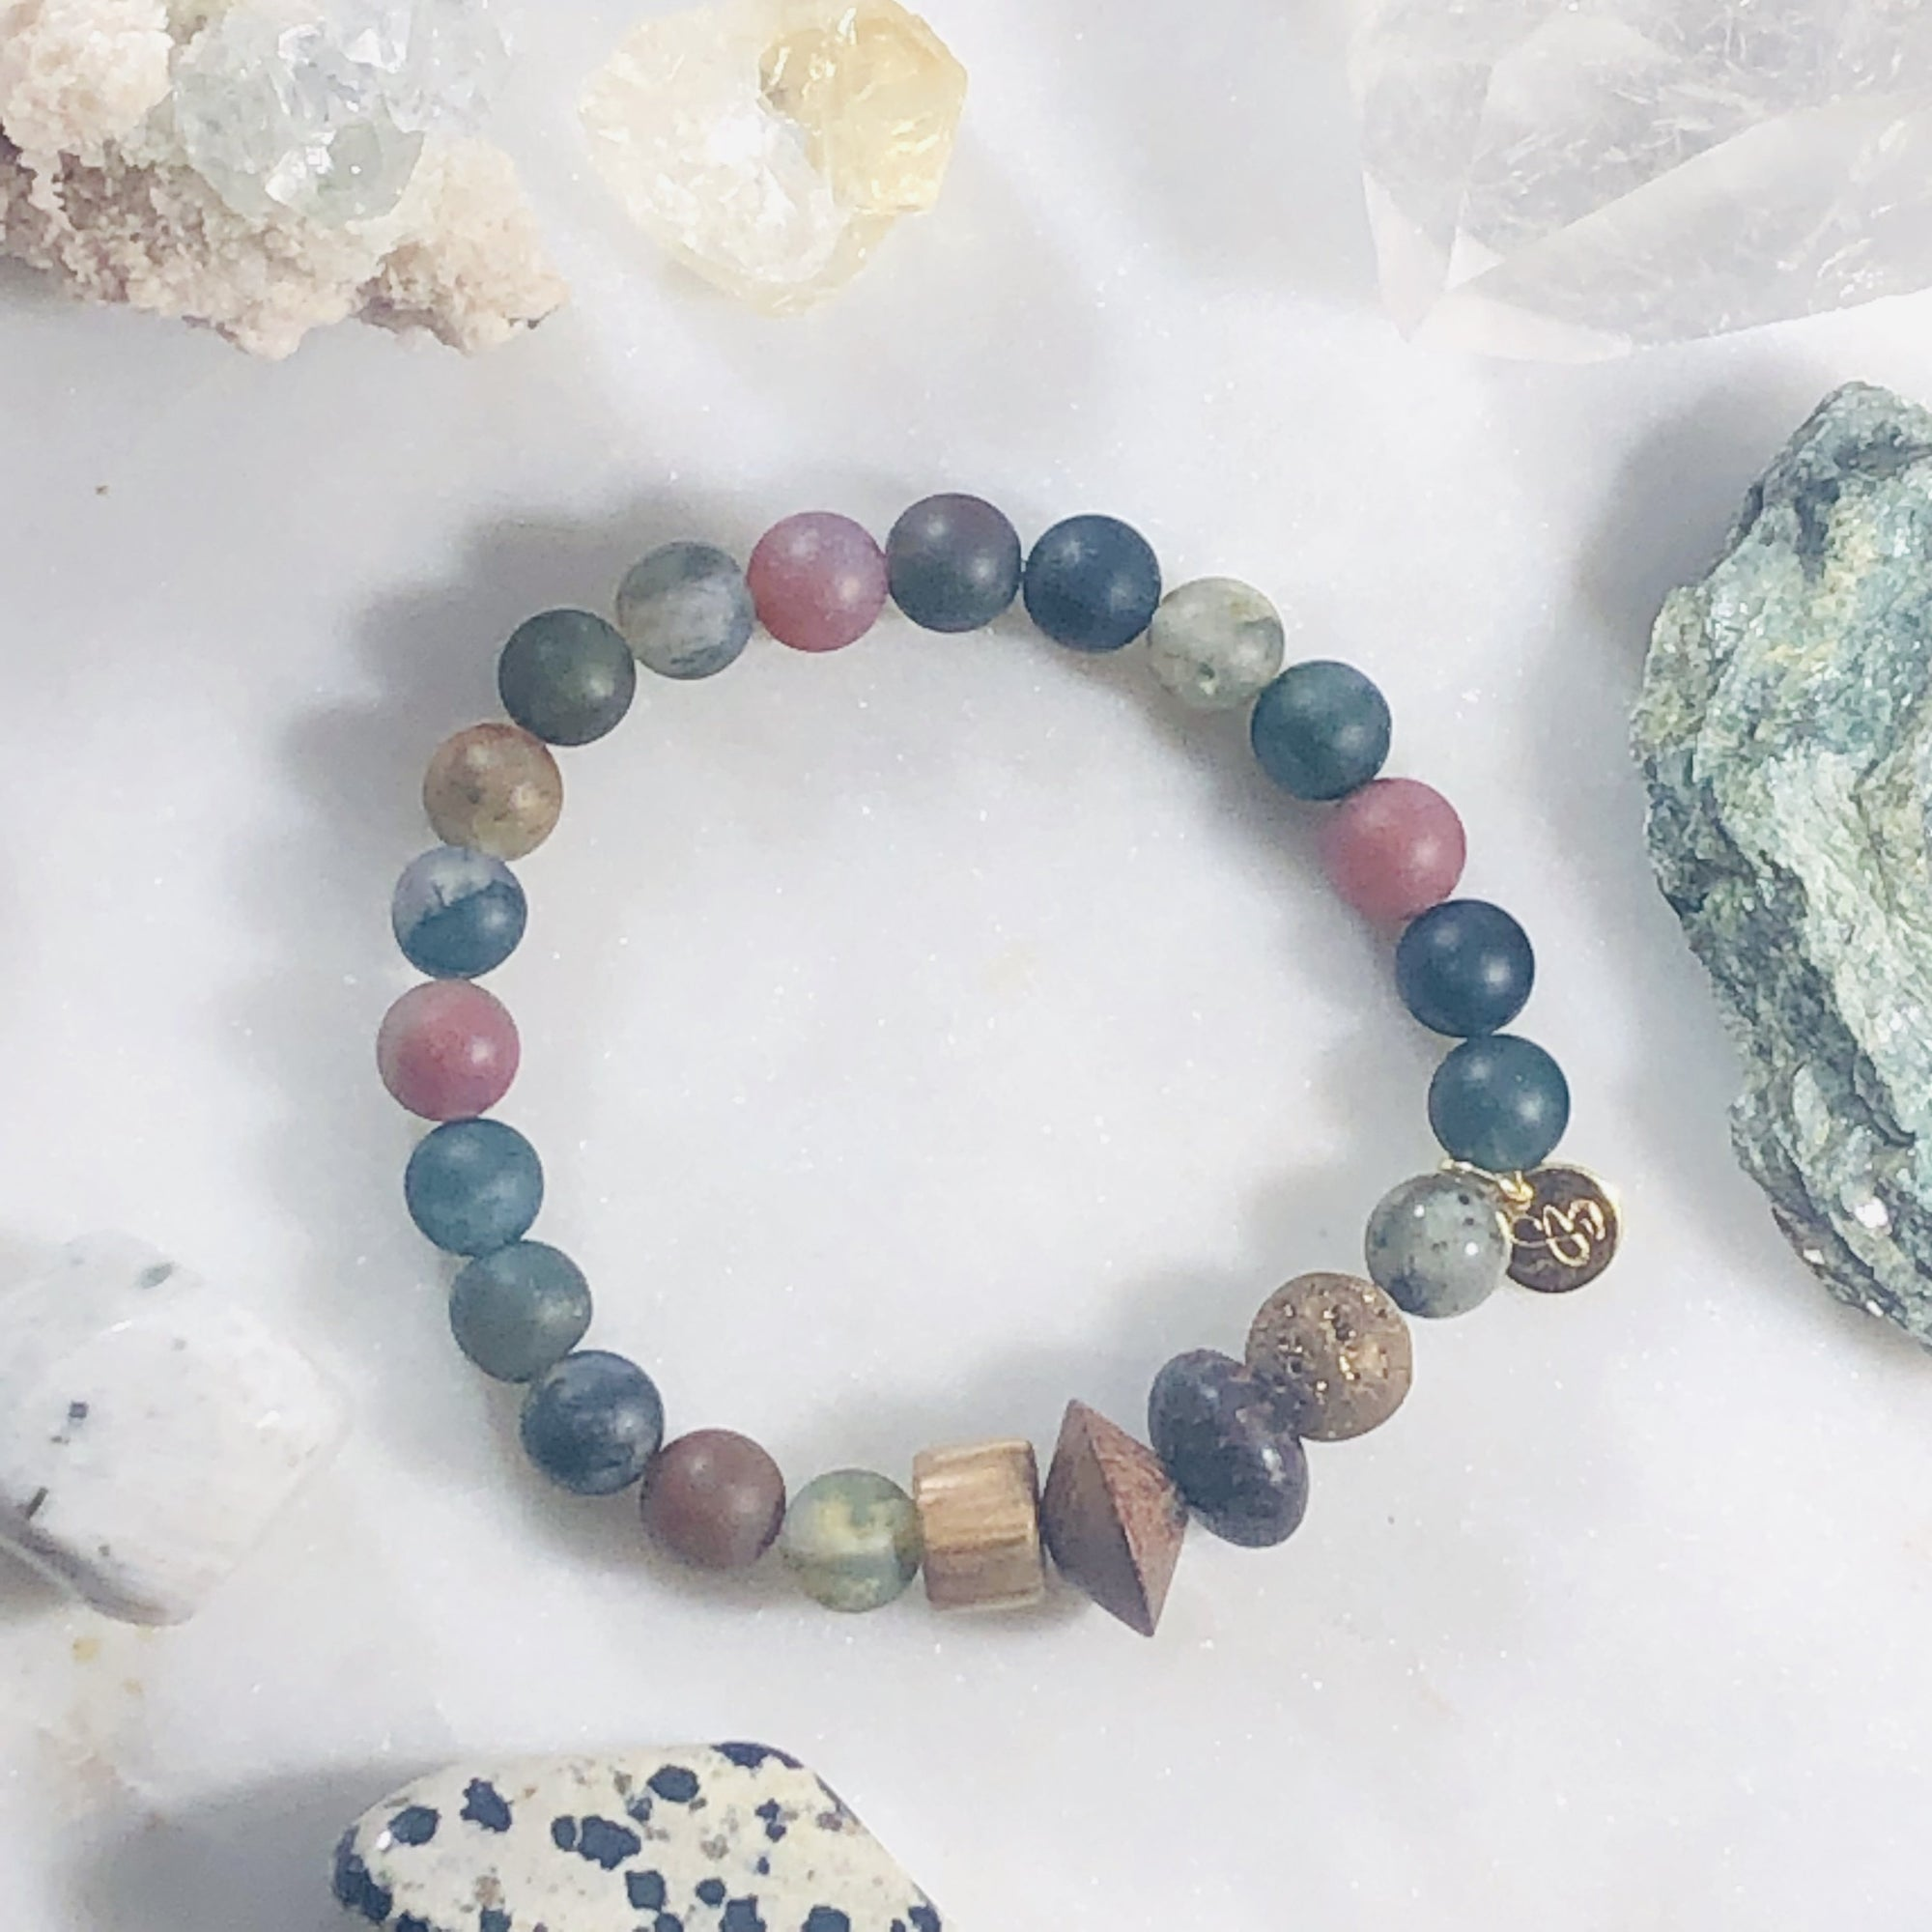 Handmade crystal healing bracelet for strength, grounding and balance